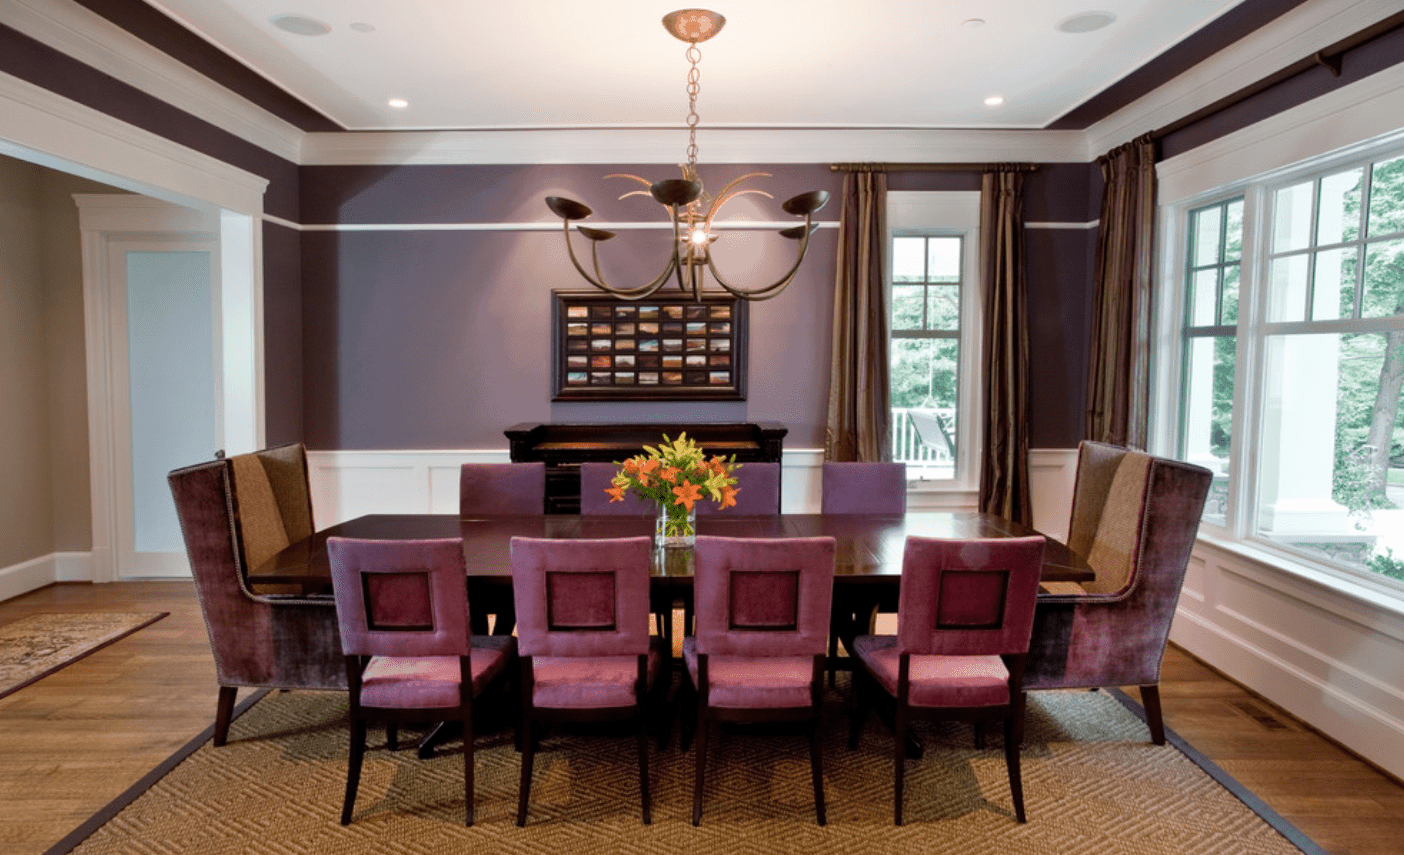 Exceptionnel A Cozy Dining Area With Purple Walls And Purple Velvet Chairs, Wooden  Rectangular Table For